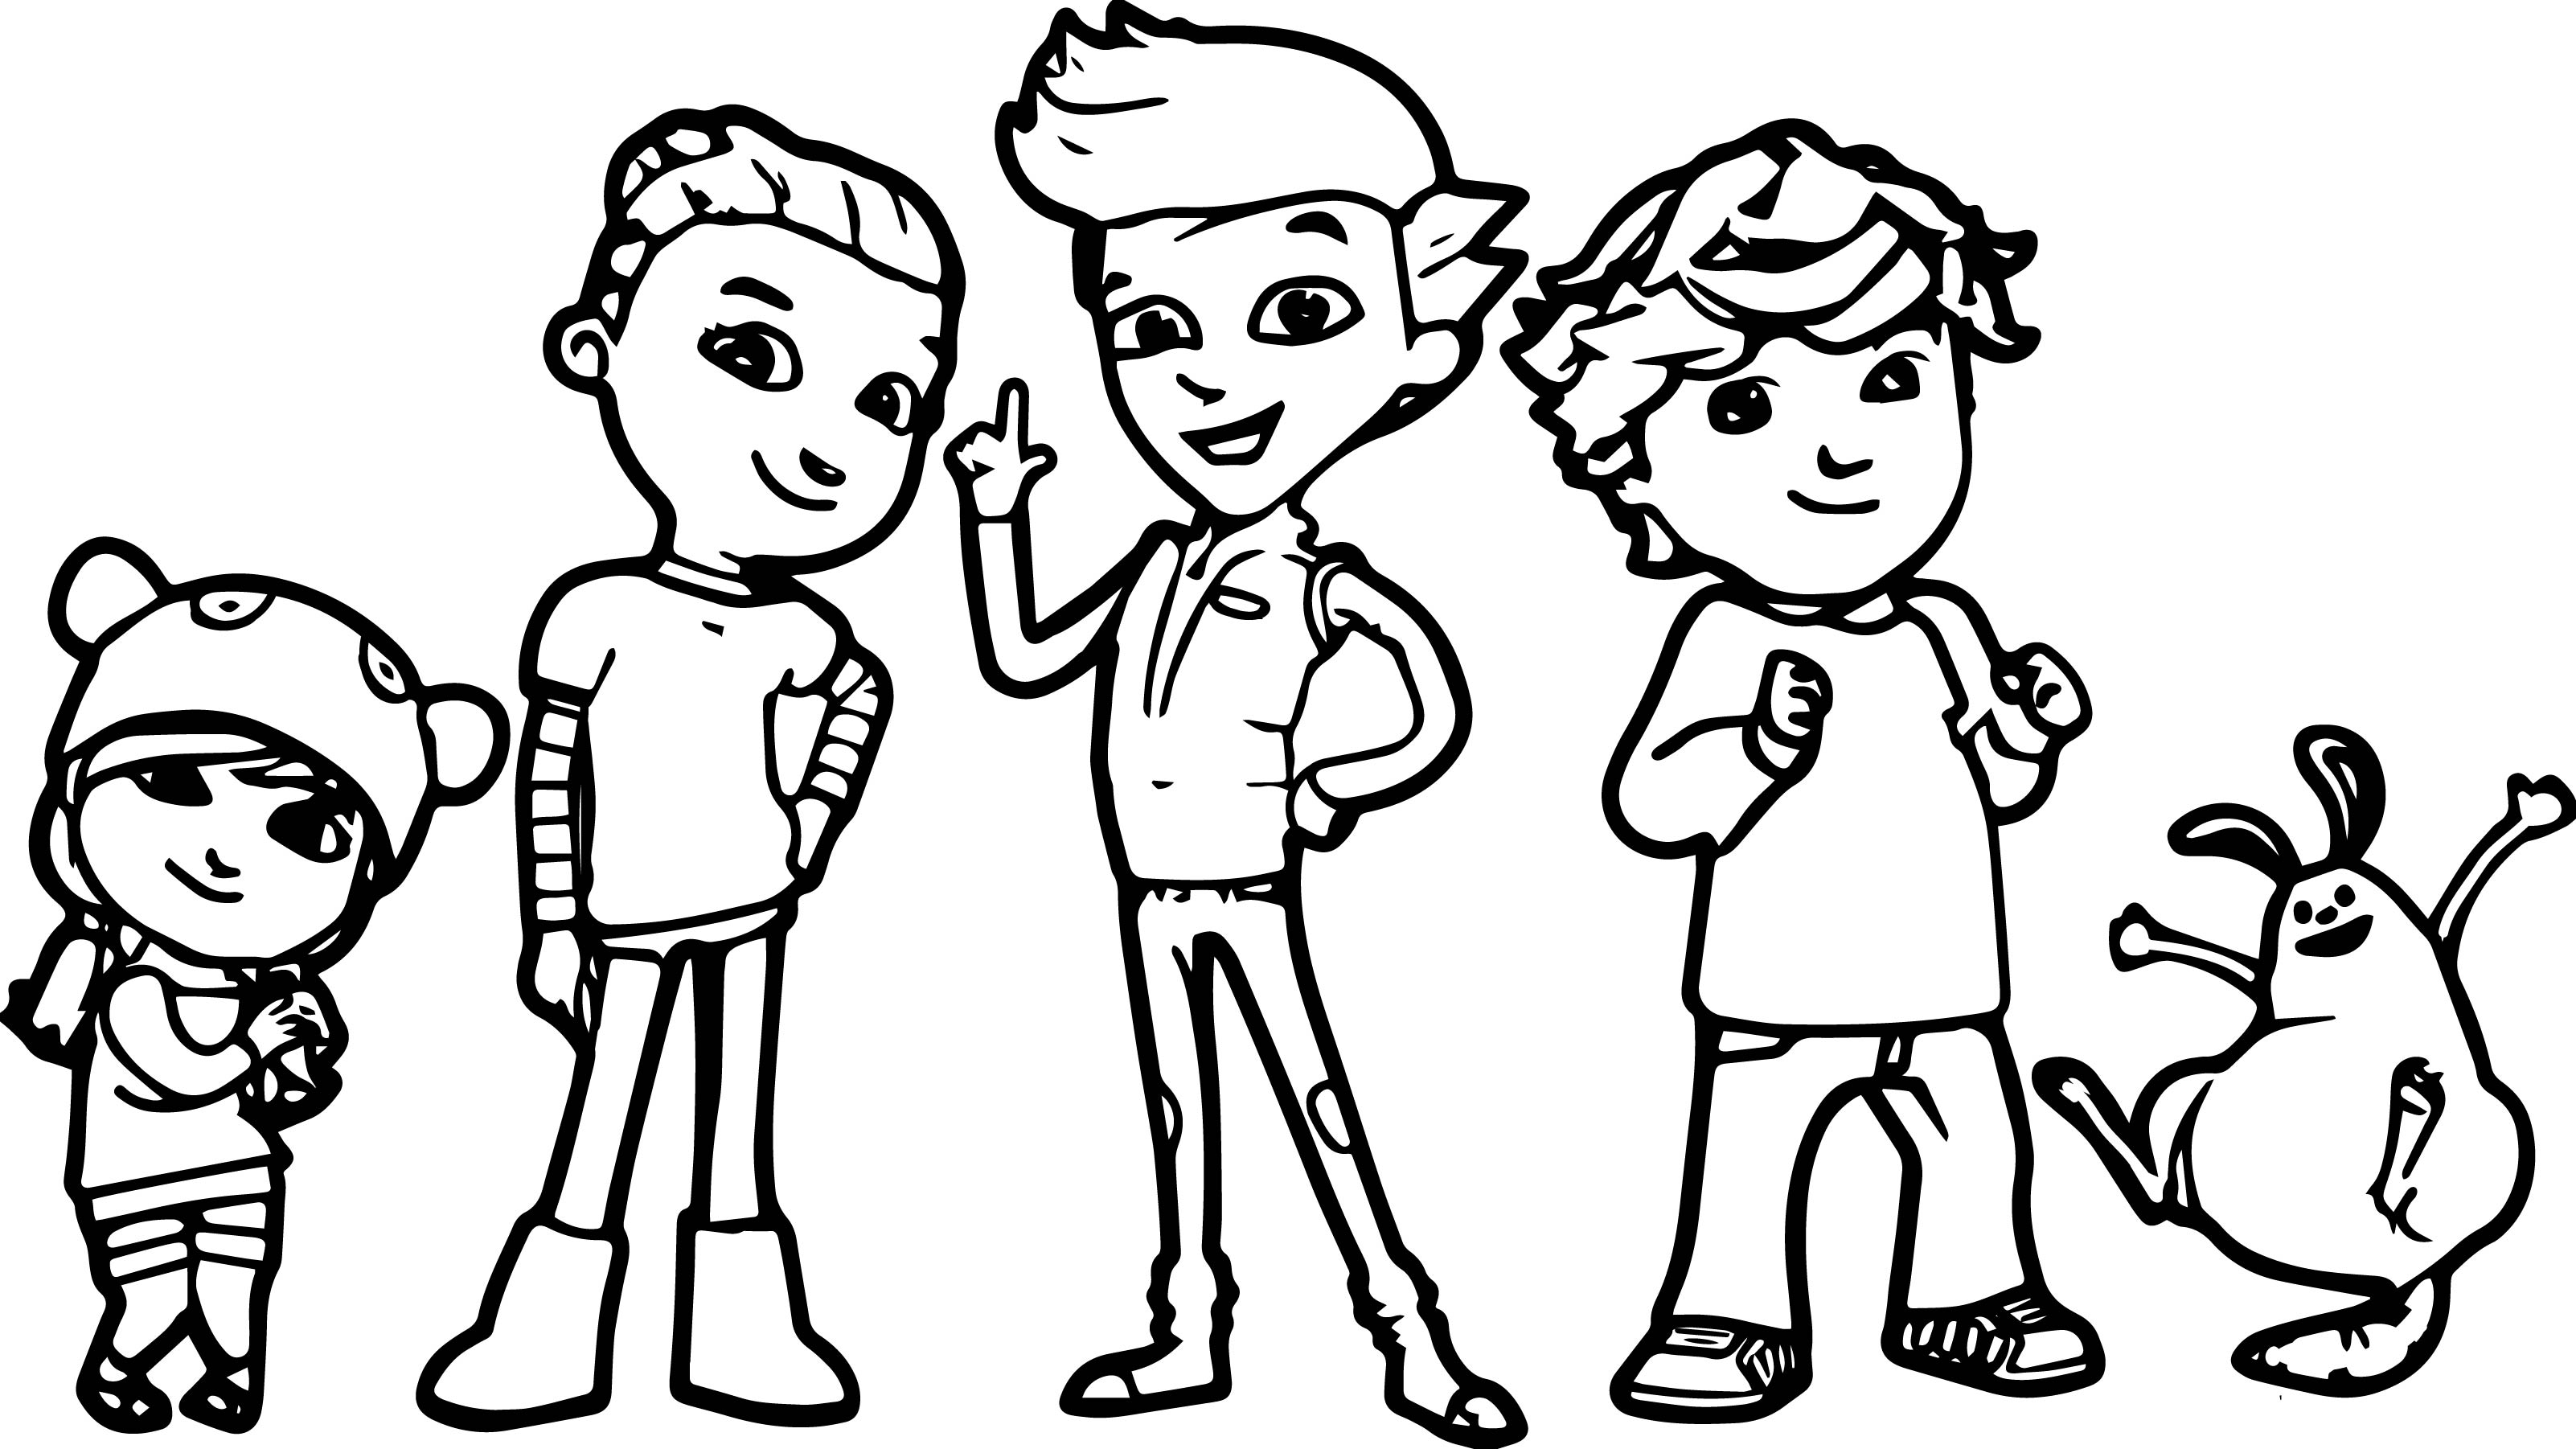 Pbs Kids Ready Jet Go Coloring Page